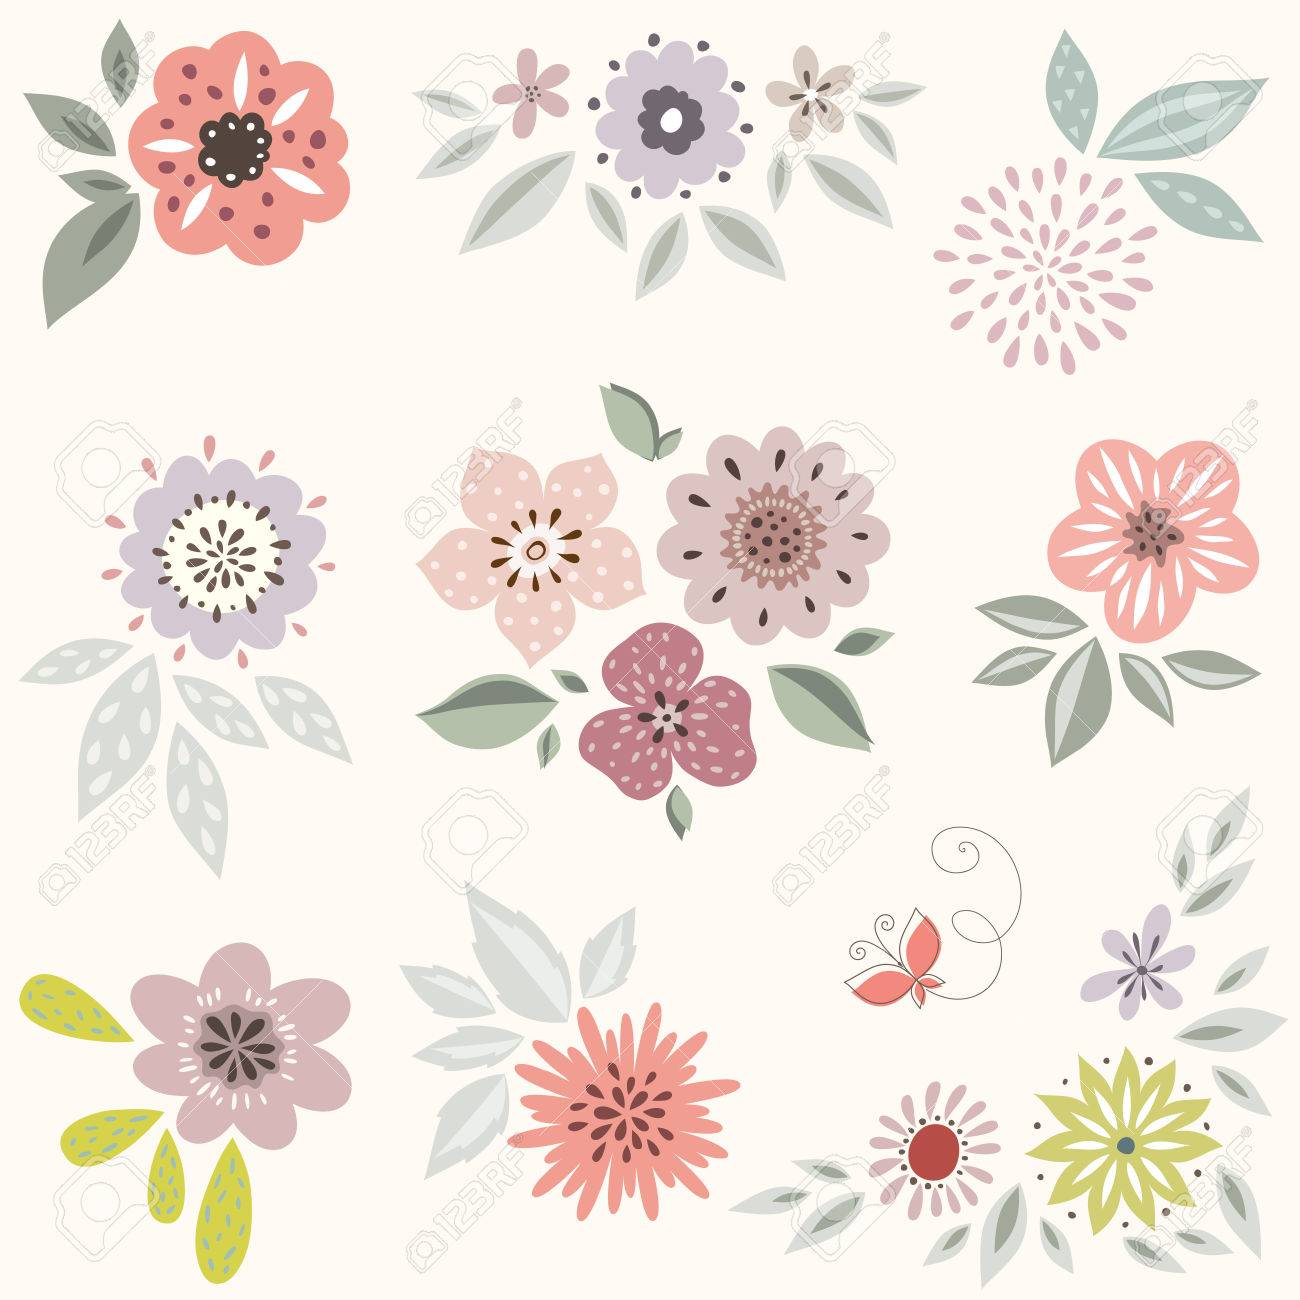 How to scrapbook good - Vector Vector Decorative Floral Set Good For Birthday Cards Wedding Invitations And Scrapbook